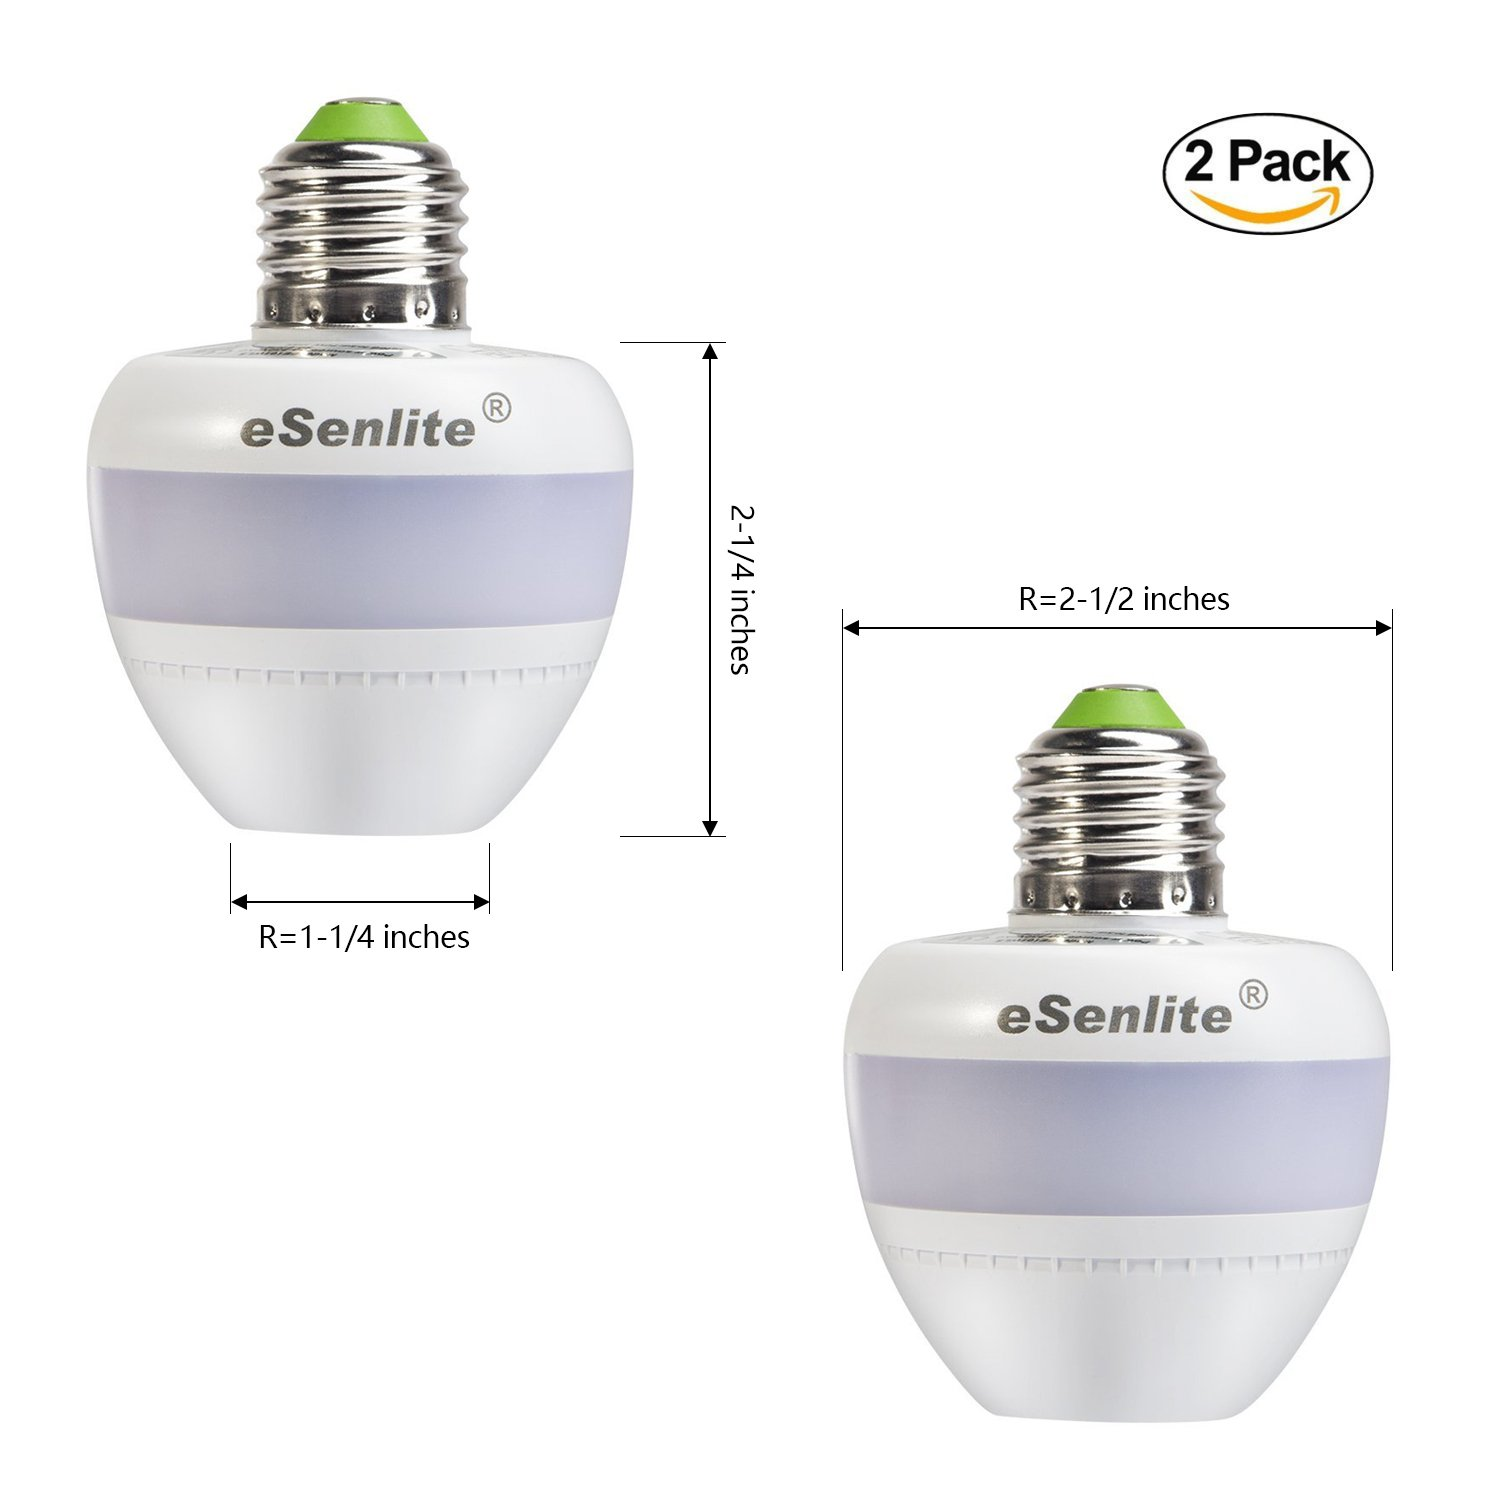 eSenlite Radar Motion Sensor Activated Retrofit Light Sockets Compatible LED CFL Incandescent Bulb Outdoor Light Fixture Indoor Table Floor Decoration Lamp Fixed Base Dusk to Dawn Dimmable Pathway 2PC EE Systems EE101WLS